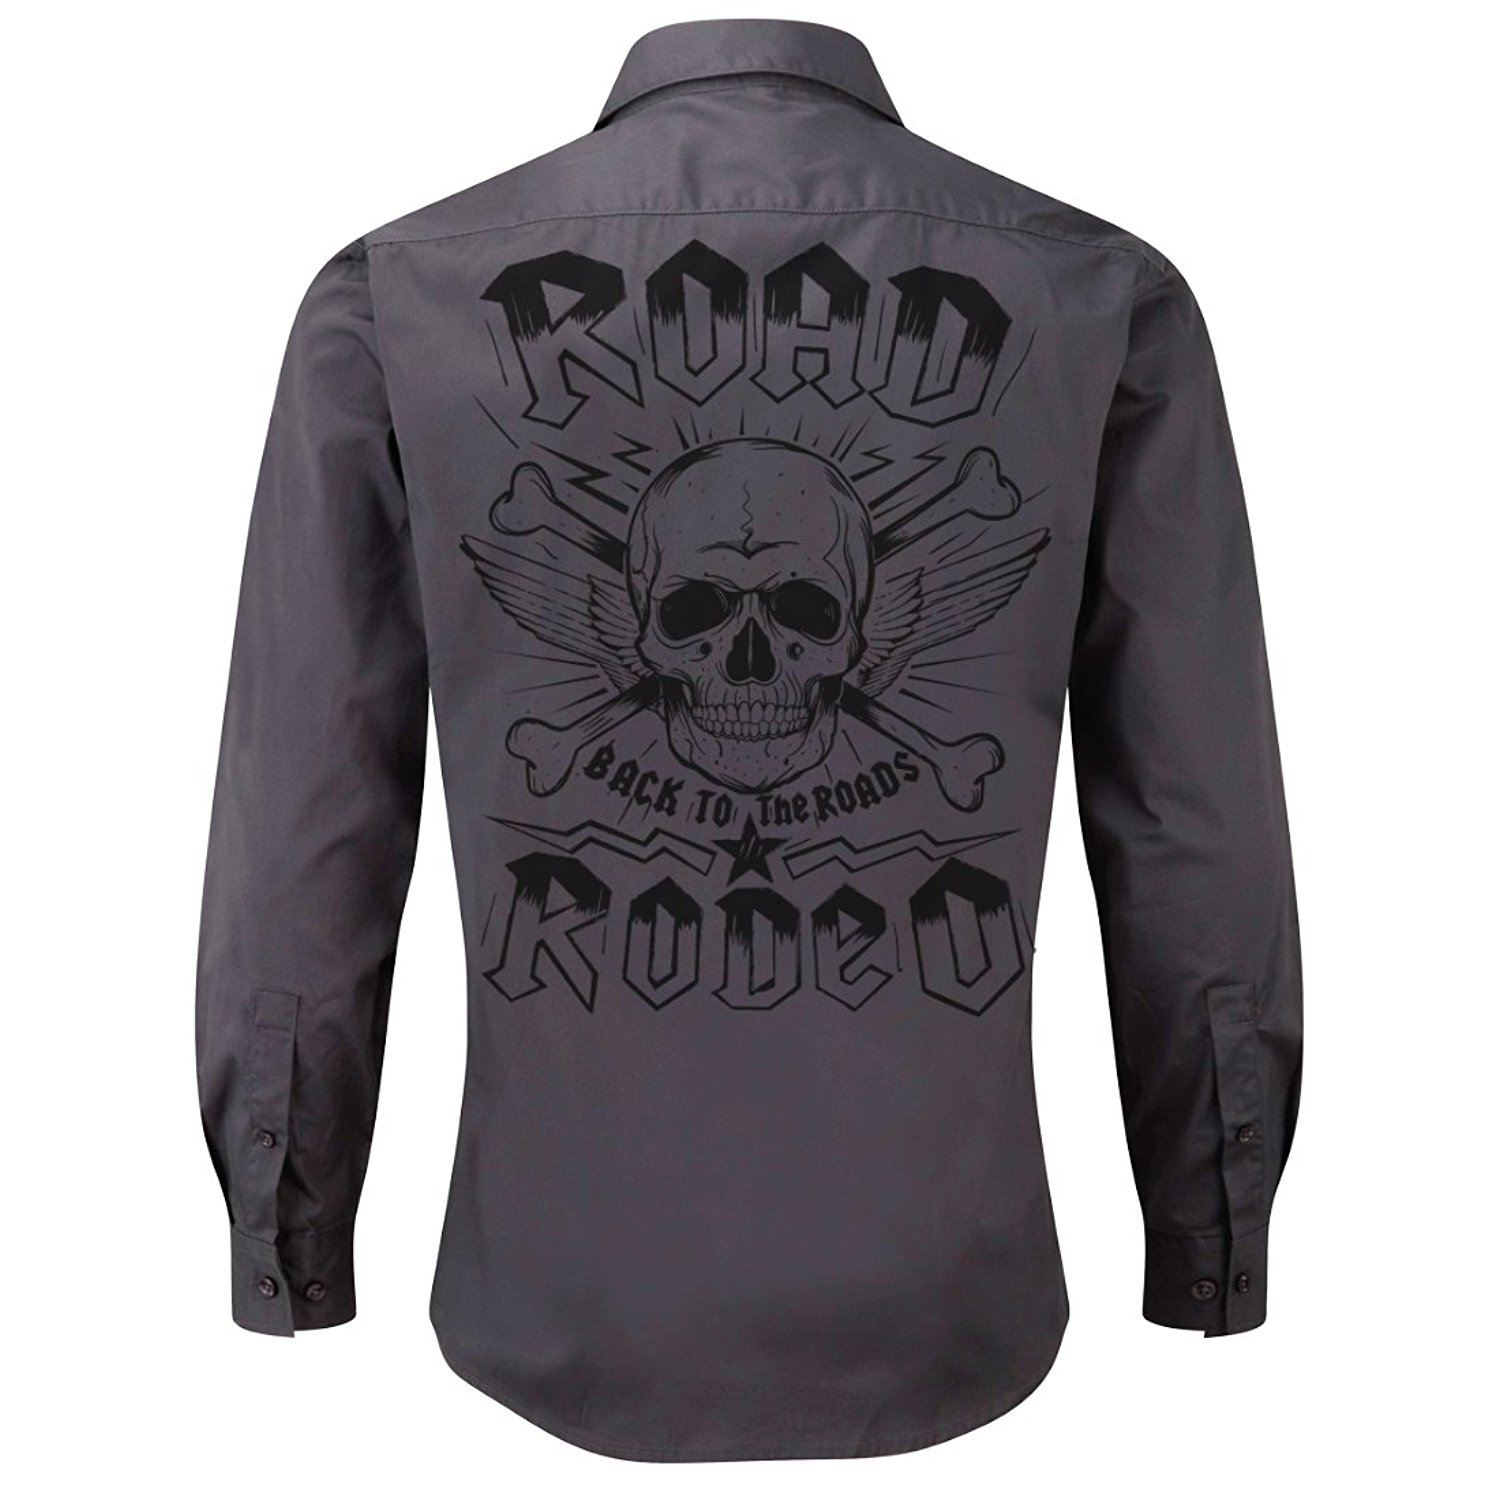 ROAD RODEO Rockabilly,Mechanic Work Shirt, Longsleeve, Rock'n'Roll, Punk Rock, Skull (Grey)